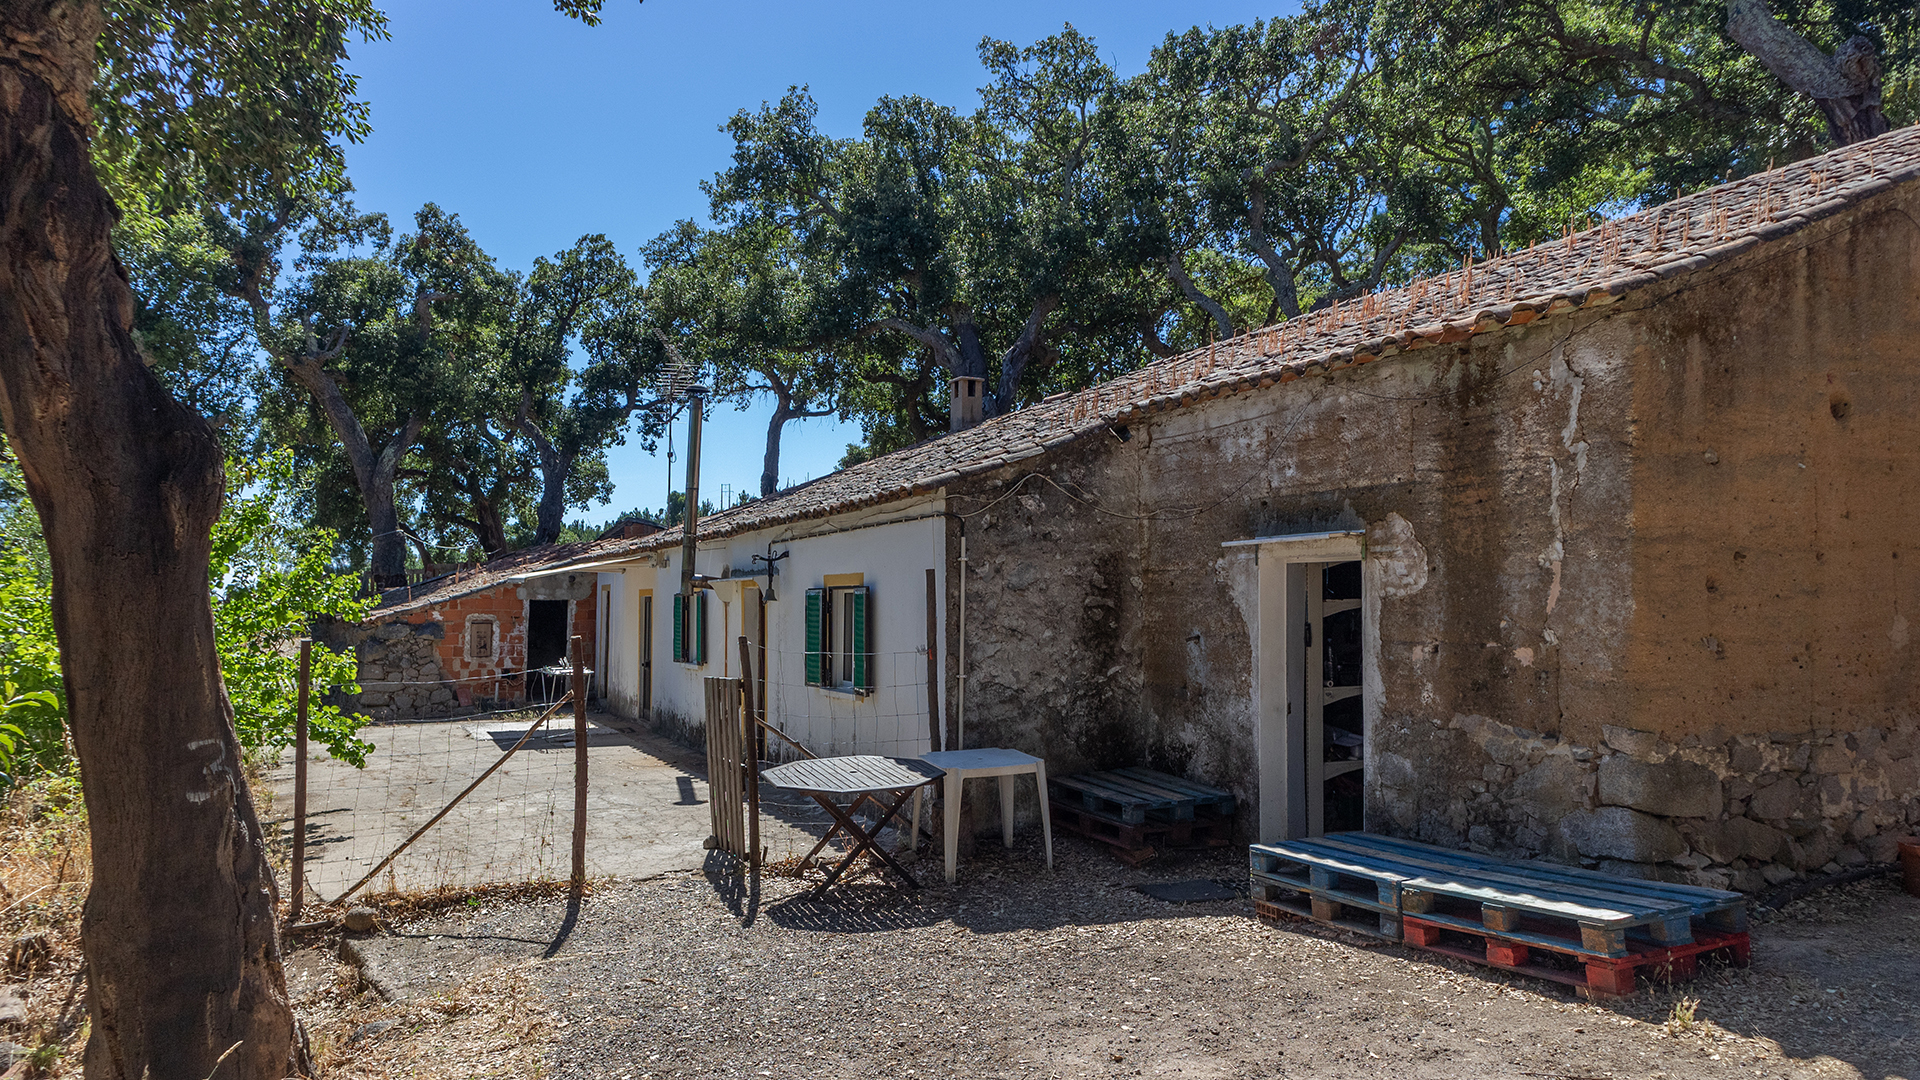 Old House on Large Plot with Organic Produce and Sea Views, Marmelete | LG1668 Here is a wonderful opportunity to renovate or rebuild in a tranquil and scenic area with an option to continue the production of certified organic fruit and vegetables or possibly create a rural tourism retreat which should be a simple process as the land is not within the environmental reserves.